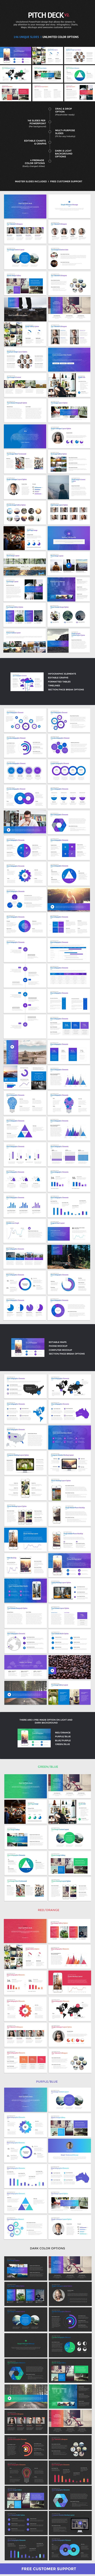 Pitch Deck Start Up Powerpoint Template #design #slides Download: http://graphicriver.net/item/pitch-deck-start-up-powerpoint/12253011?ref=ksioks